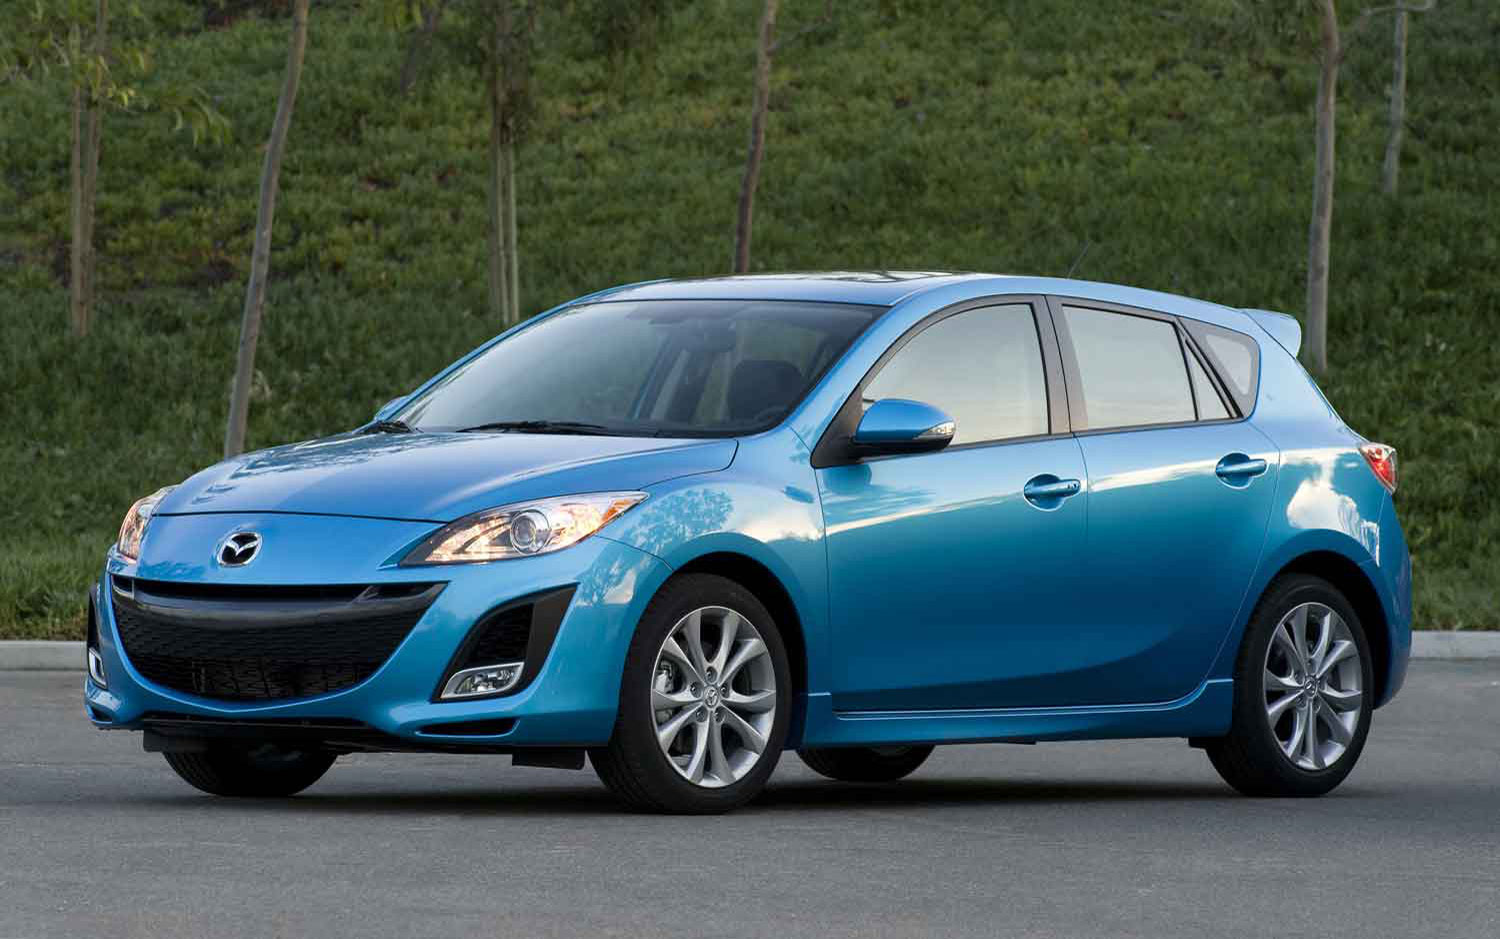 2007 Mazda 3 Hatchback Accessories Image